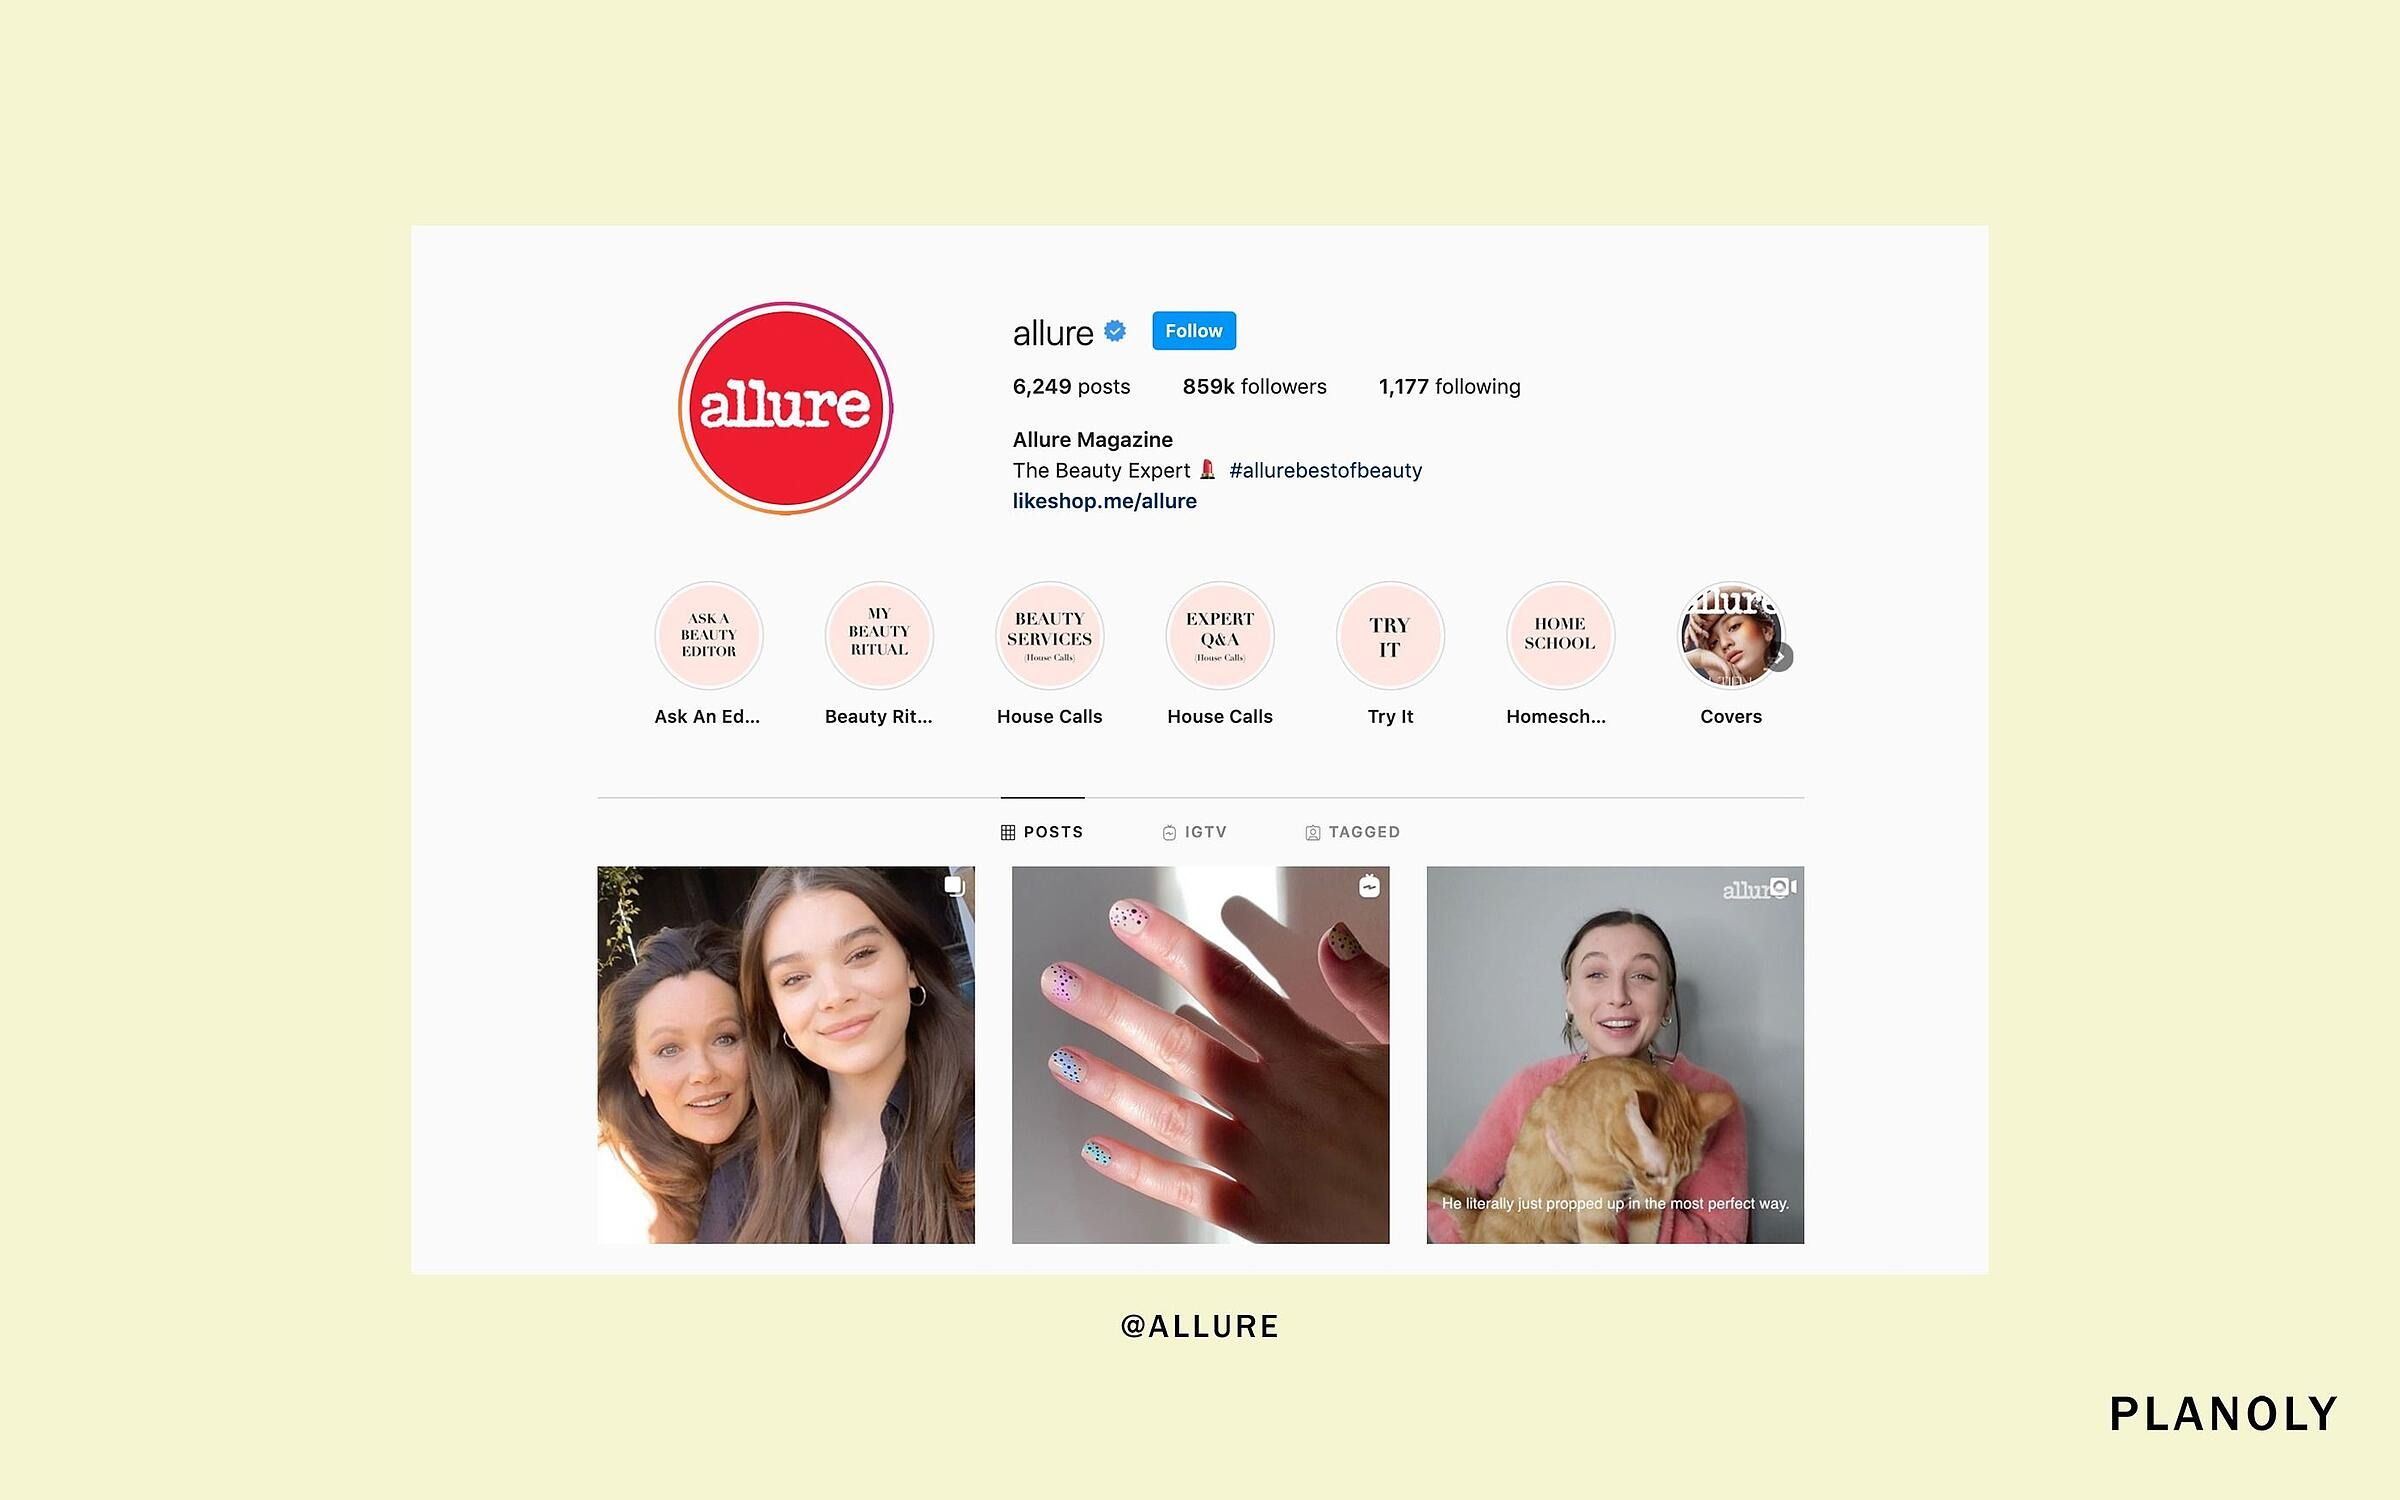 PLANOLY - Blog Post - How to Create Instagram Stories Highlights That Serve Your Customers - Image 2